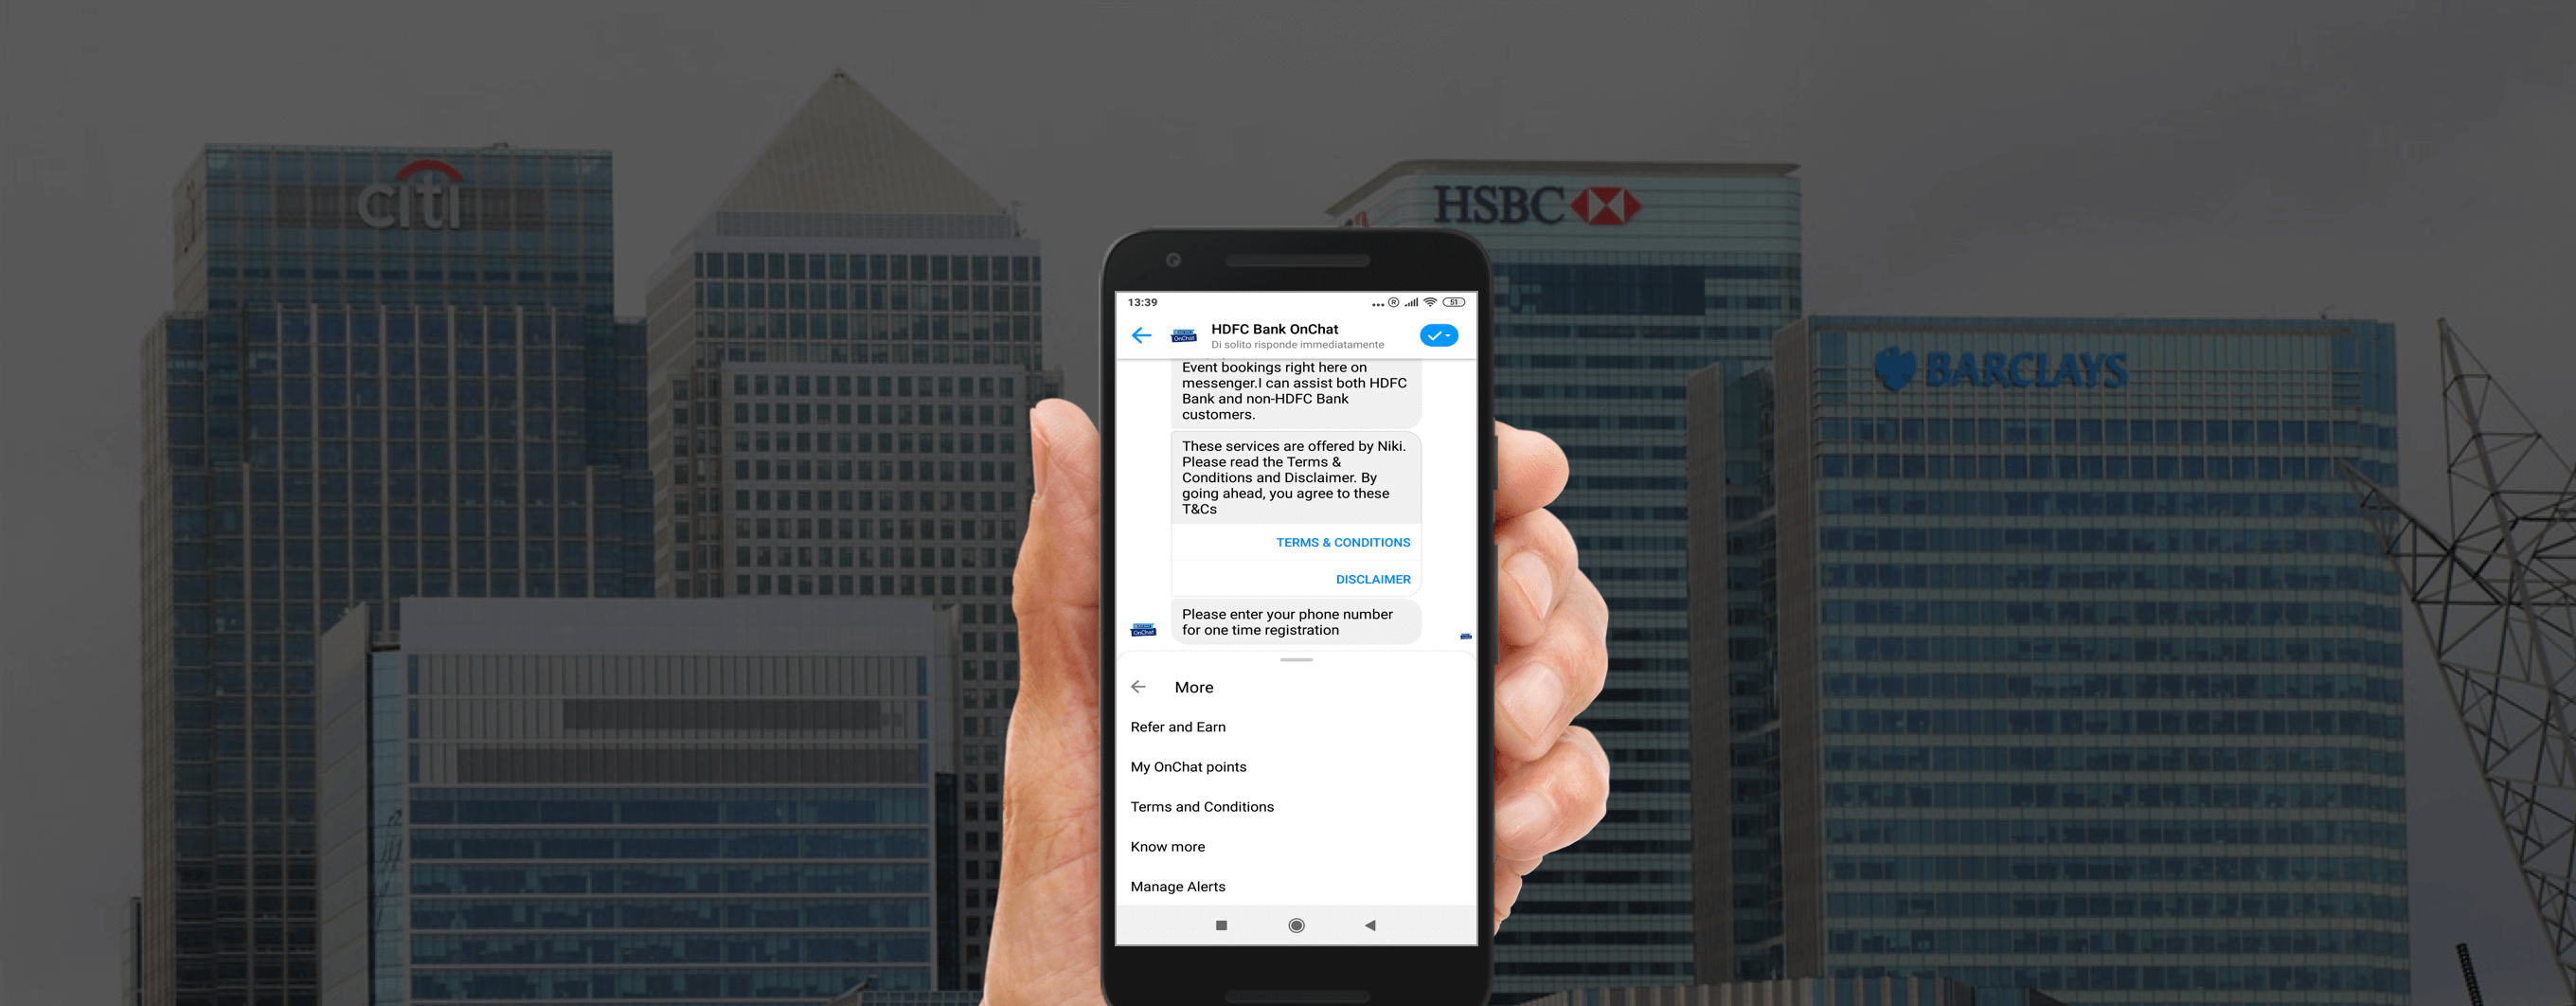 How chatbots can improve user experience in online banking